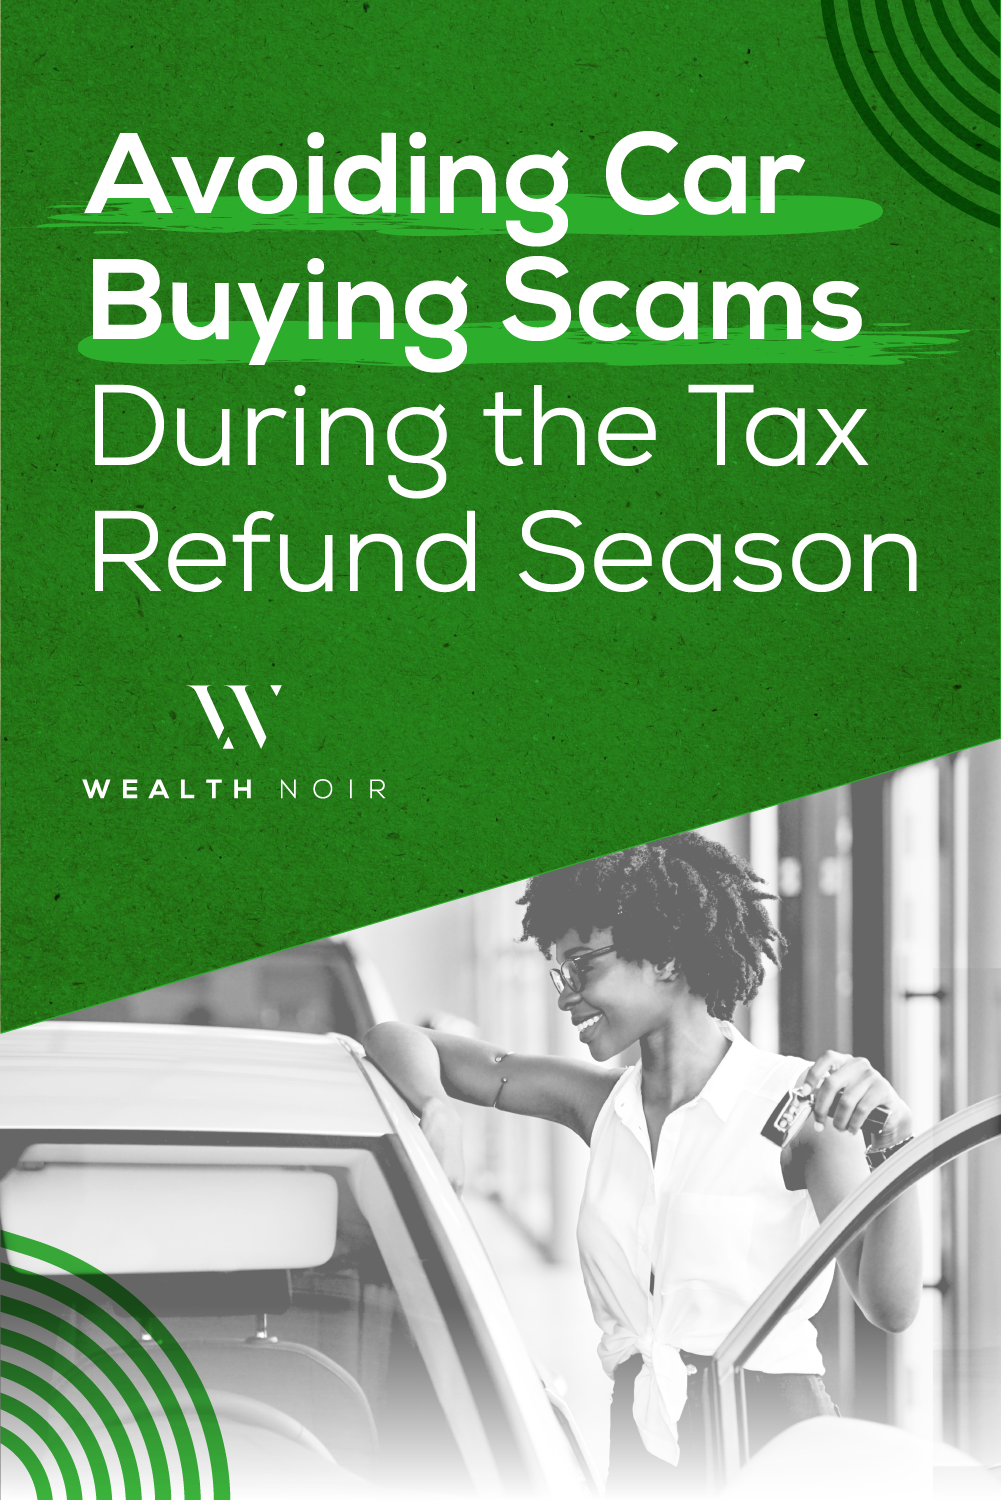 Avoiding Car Buying Scams During the Tax Refund Season